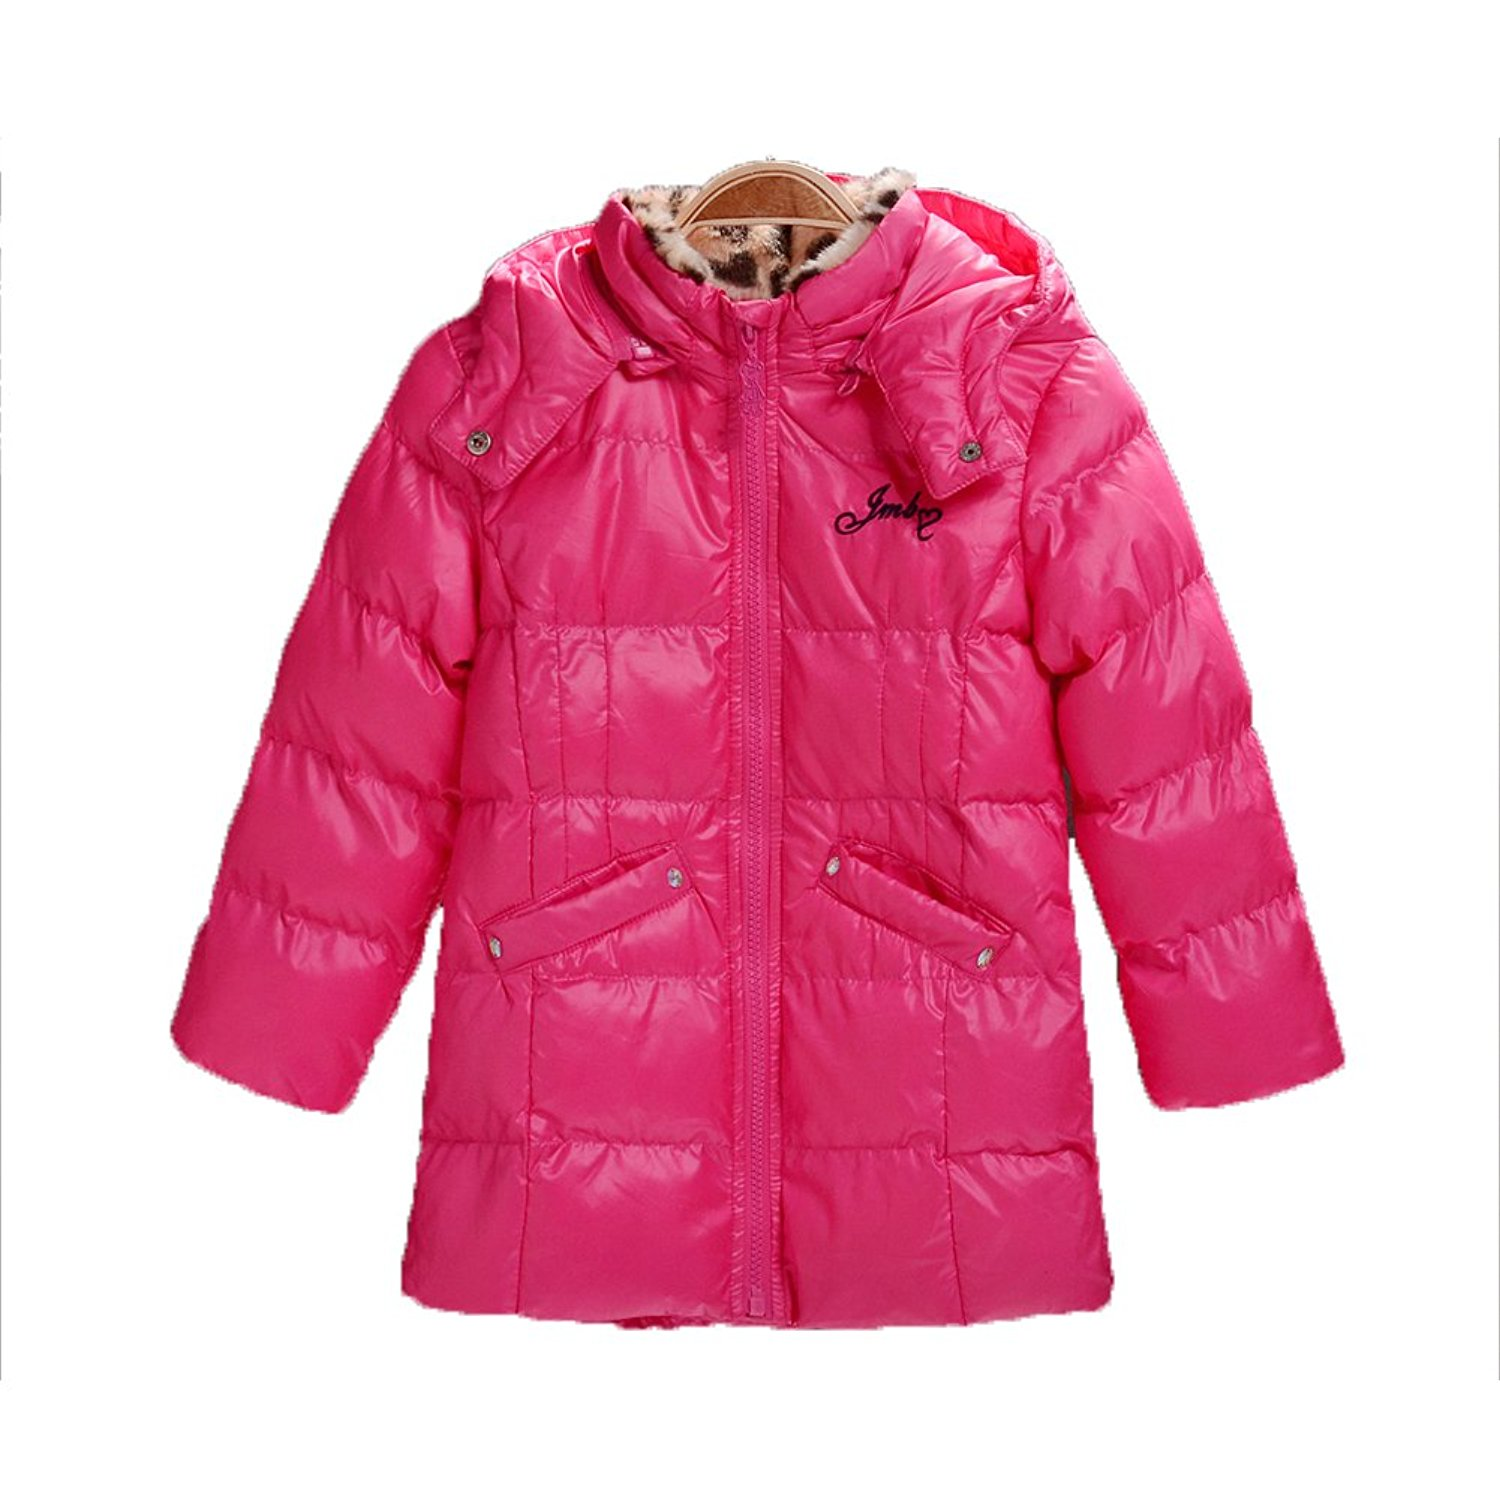 8795a67fb86 Get Quotations · KID1234 Girls Winter Jacket - Baby Girl Winter Jacket